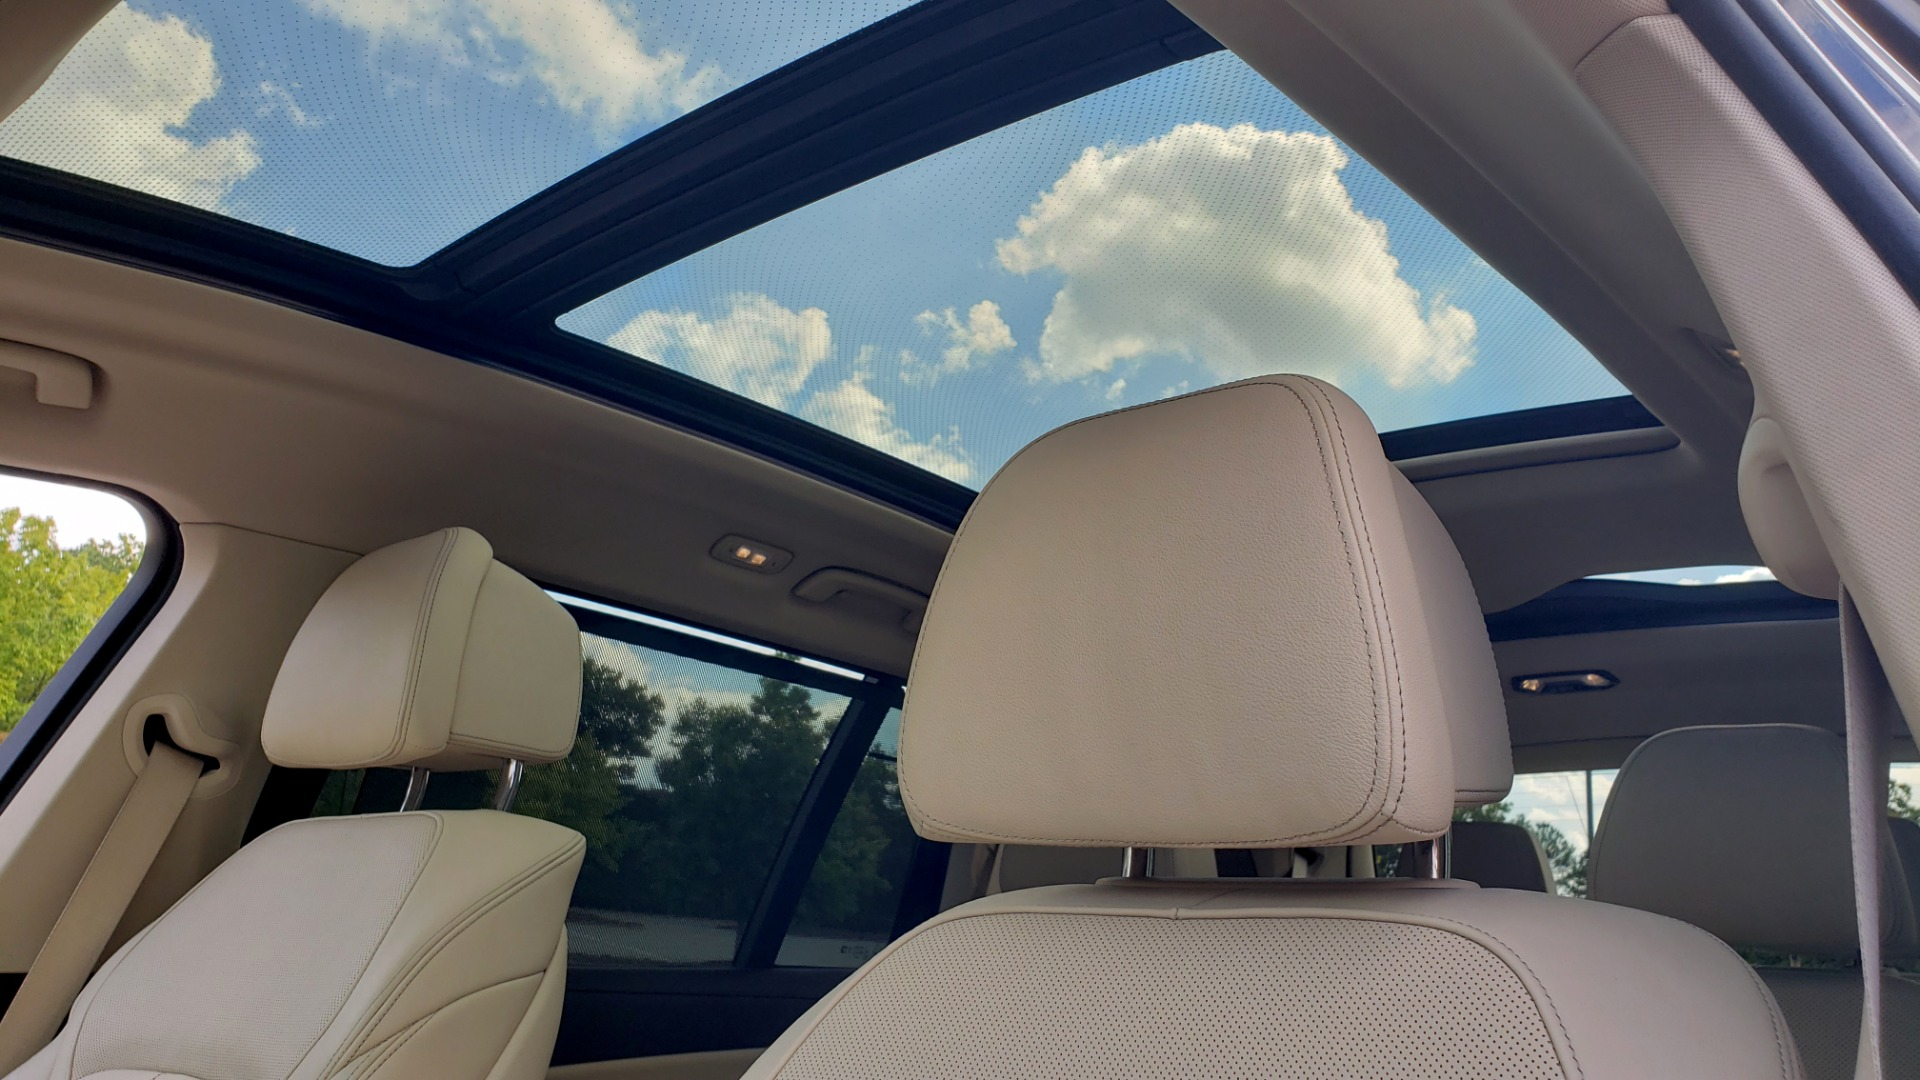 Used 2019 BMW X7 XDRIVE40I PREMIUM / LUXURY / COLD WEATHER / PARK ASST / PANORAMIC SKY / TOW for sale $75,999 at Formula Imports in Charlotte NC 28227 63